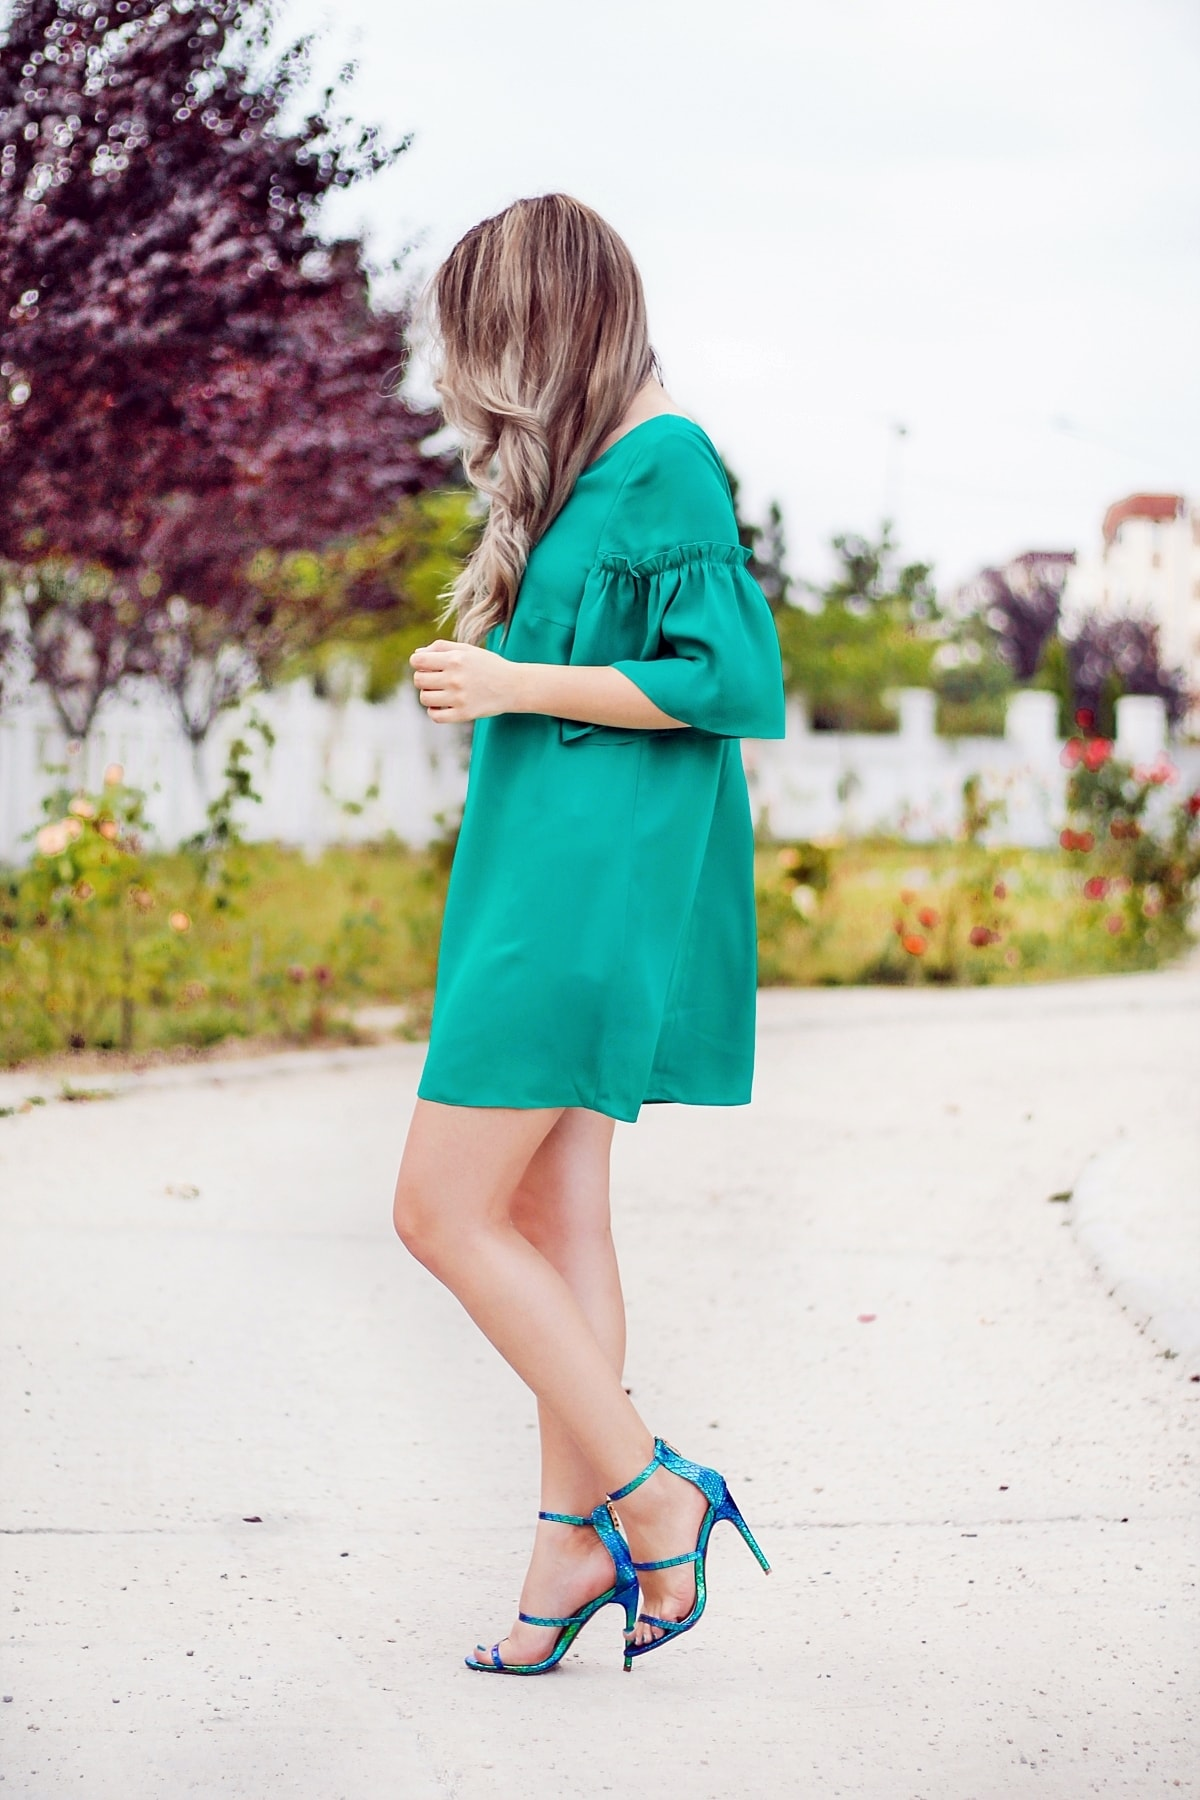 street style, green a line dress, chameleon sandals, green, blue, aqua green, summer outfit, andreea ristea, fashion blogger, summer look